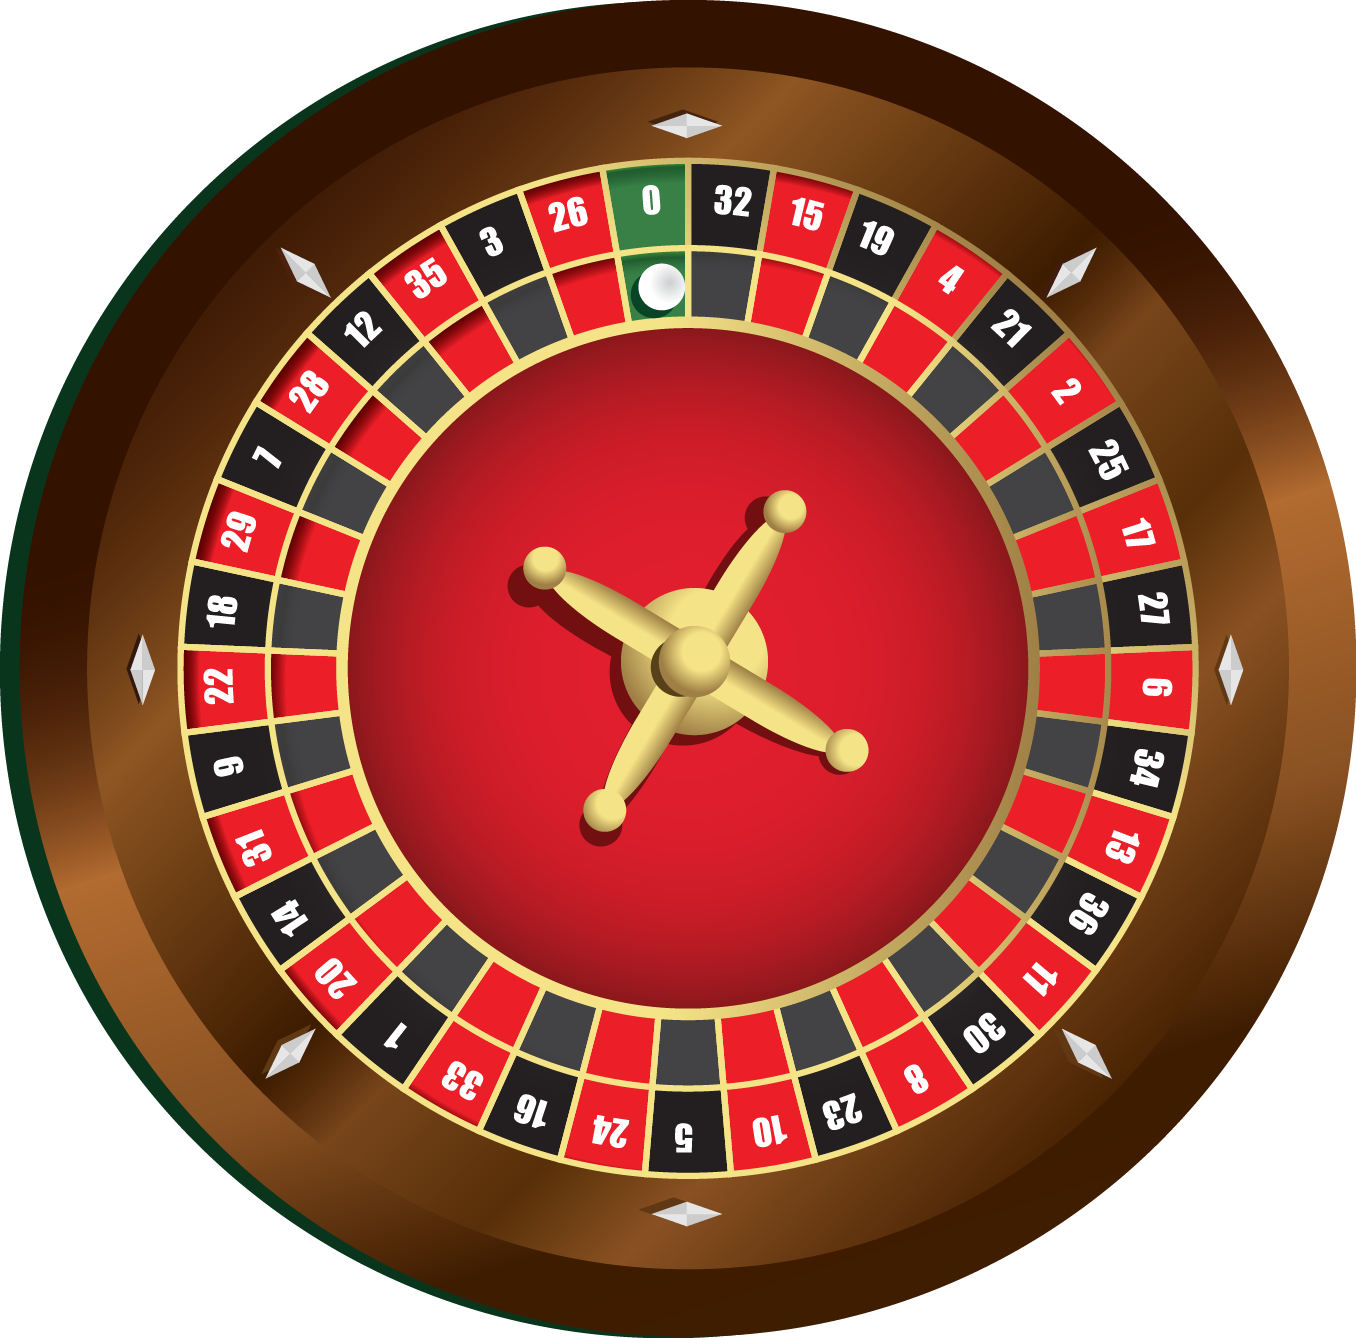 Roulette Wheel clipart french roulette #11